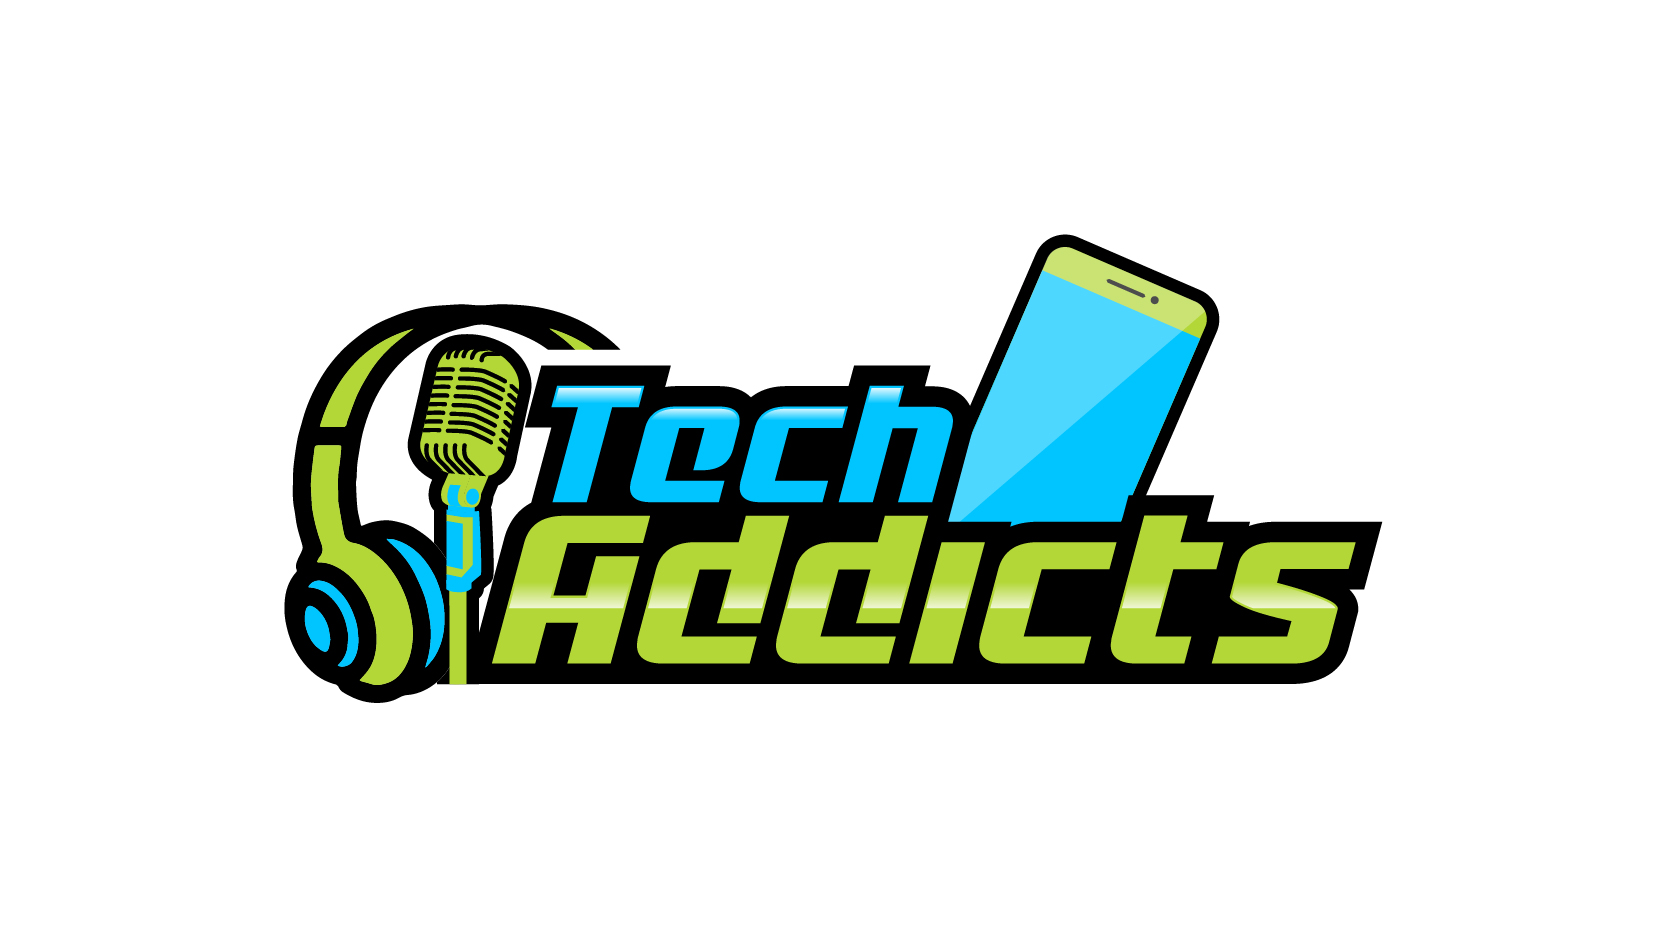 Tech Addicts Podcast – Tech Addicts OnlyFans Off The Cards